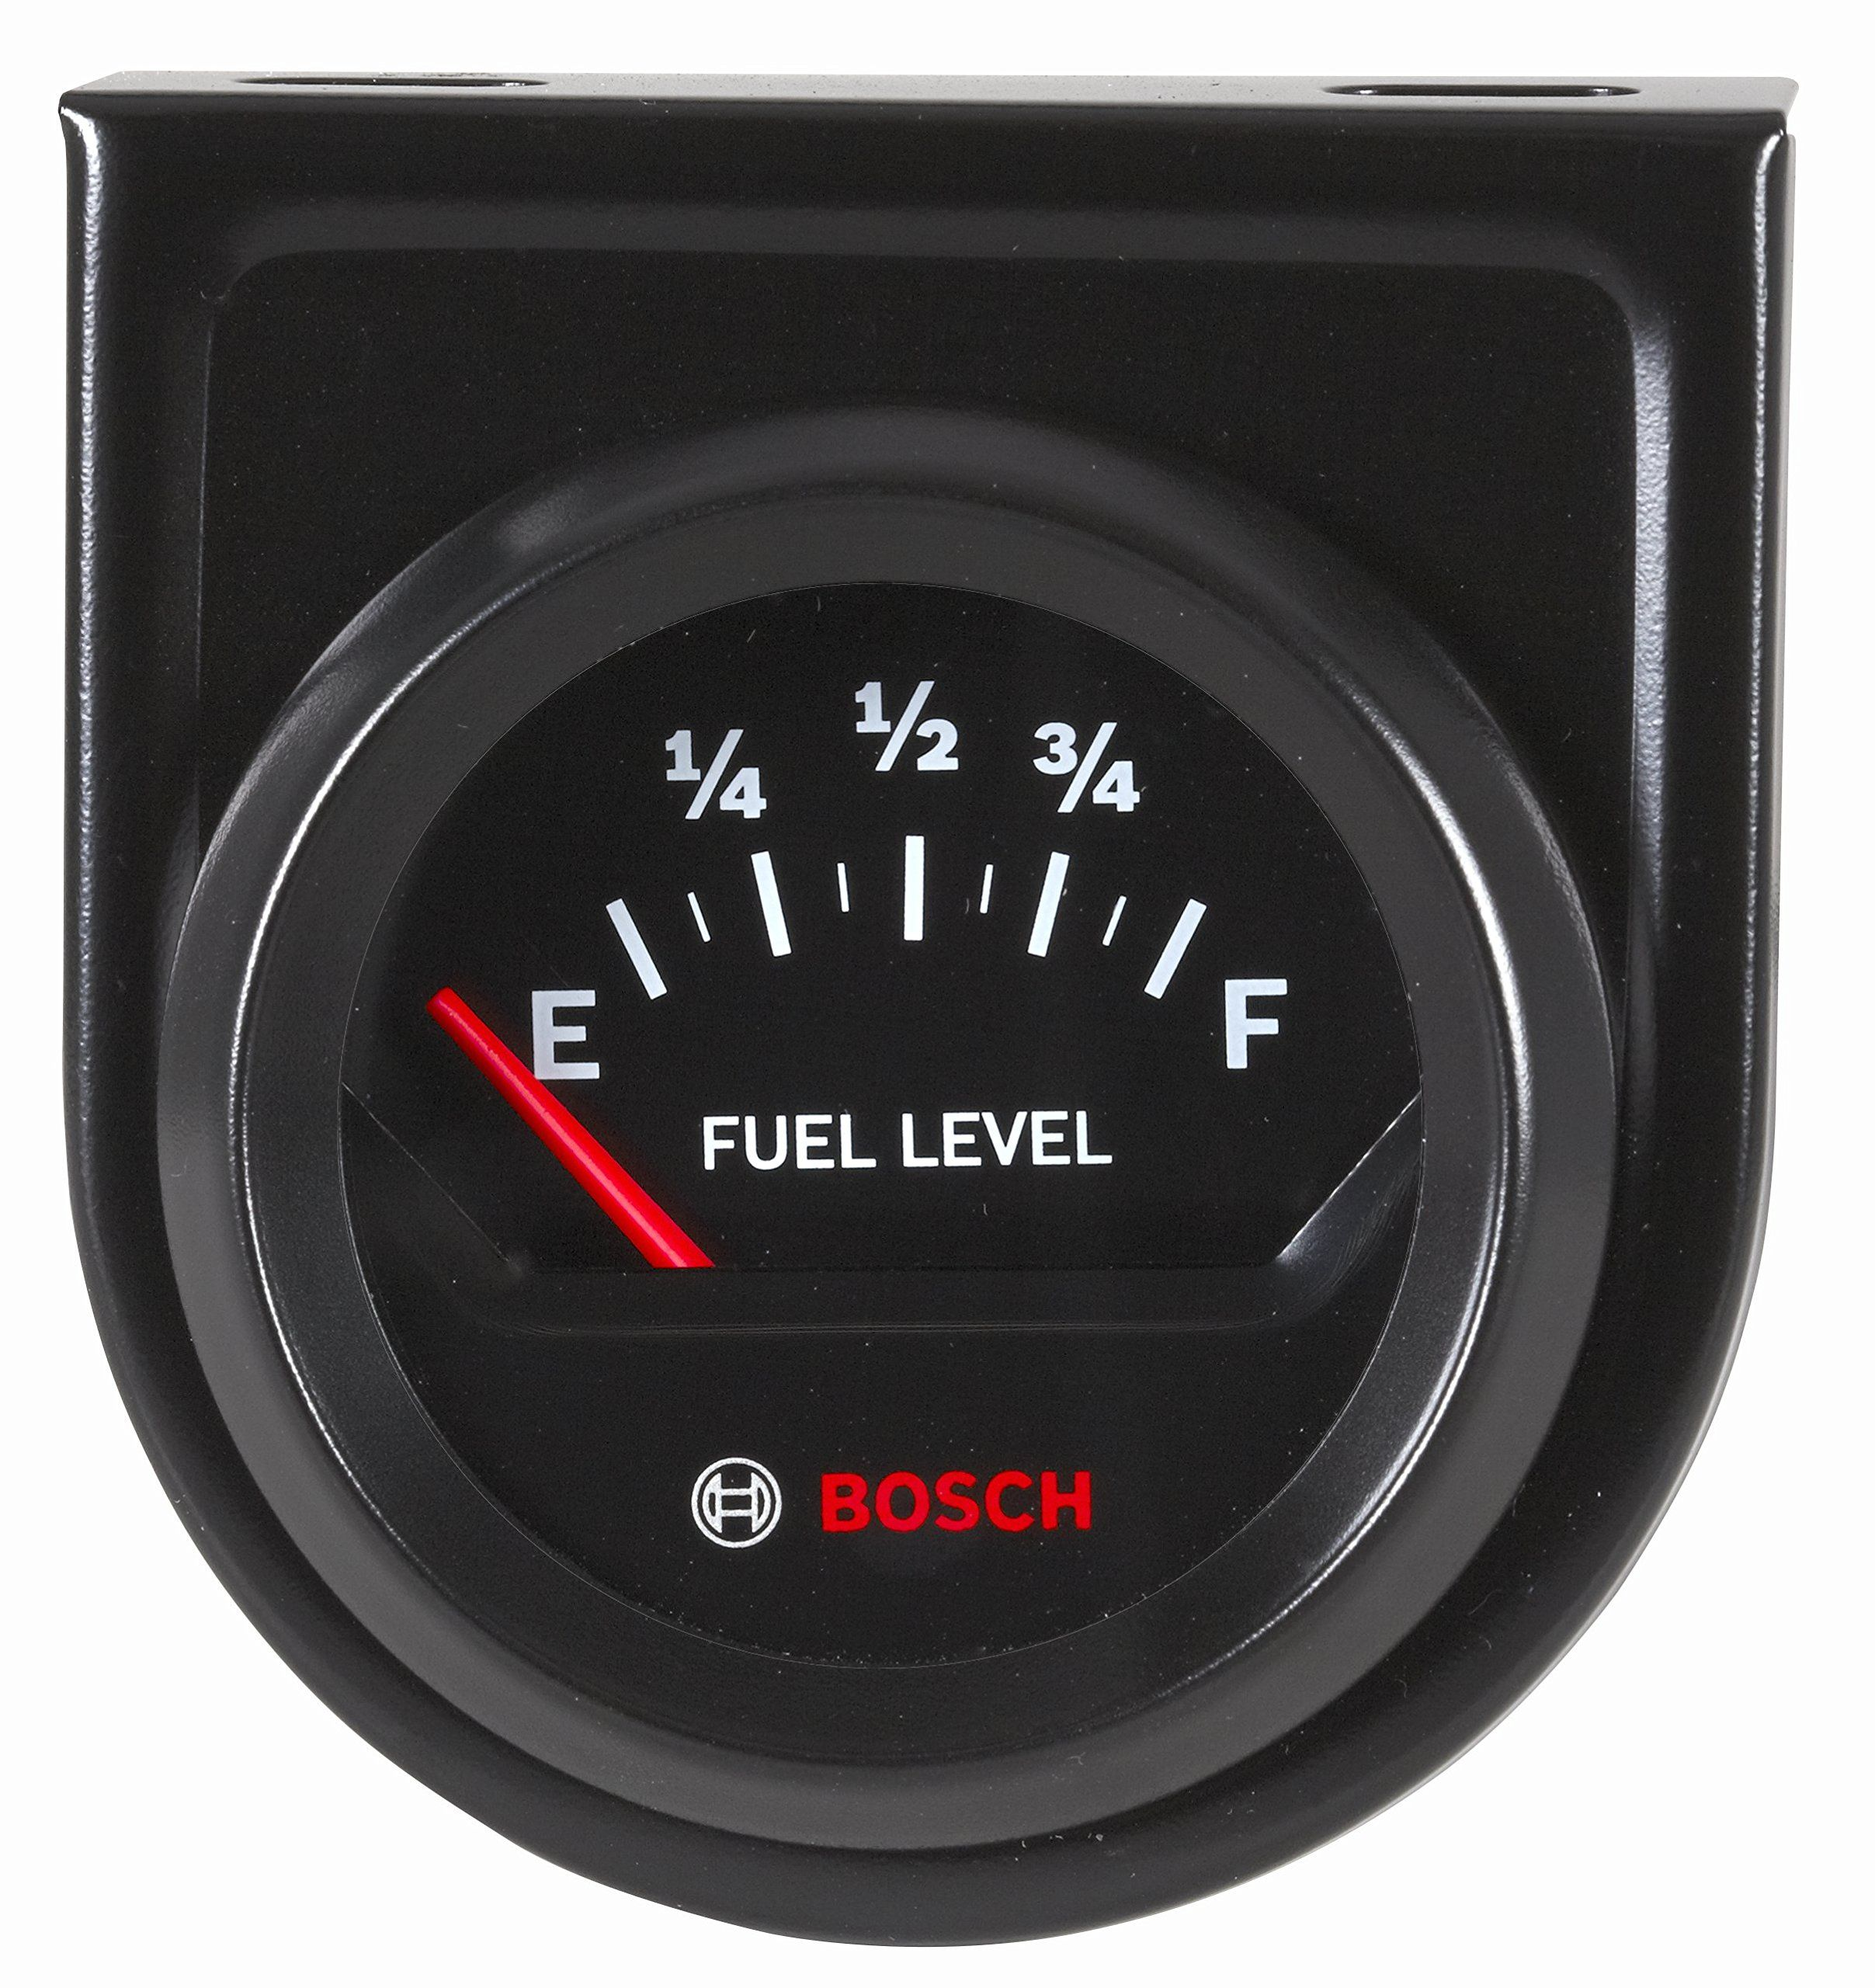 1895 Bosch Sp0f000056 Style Line 2 Electrical Fuel Level Gauge Tachometer Wiring Black Dial Face Bezel